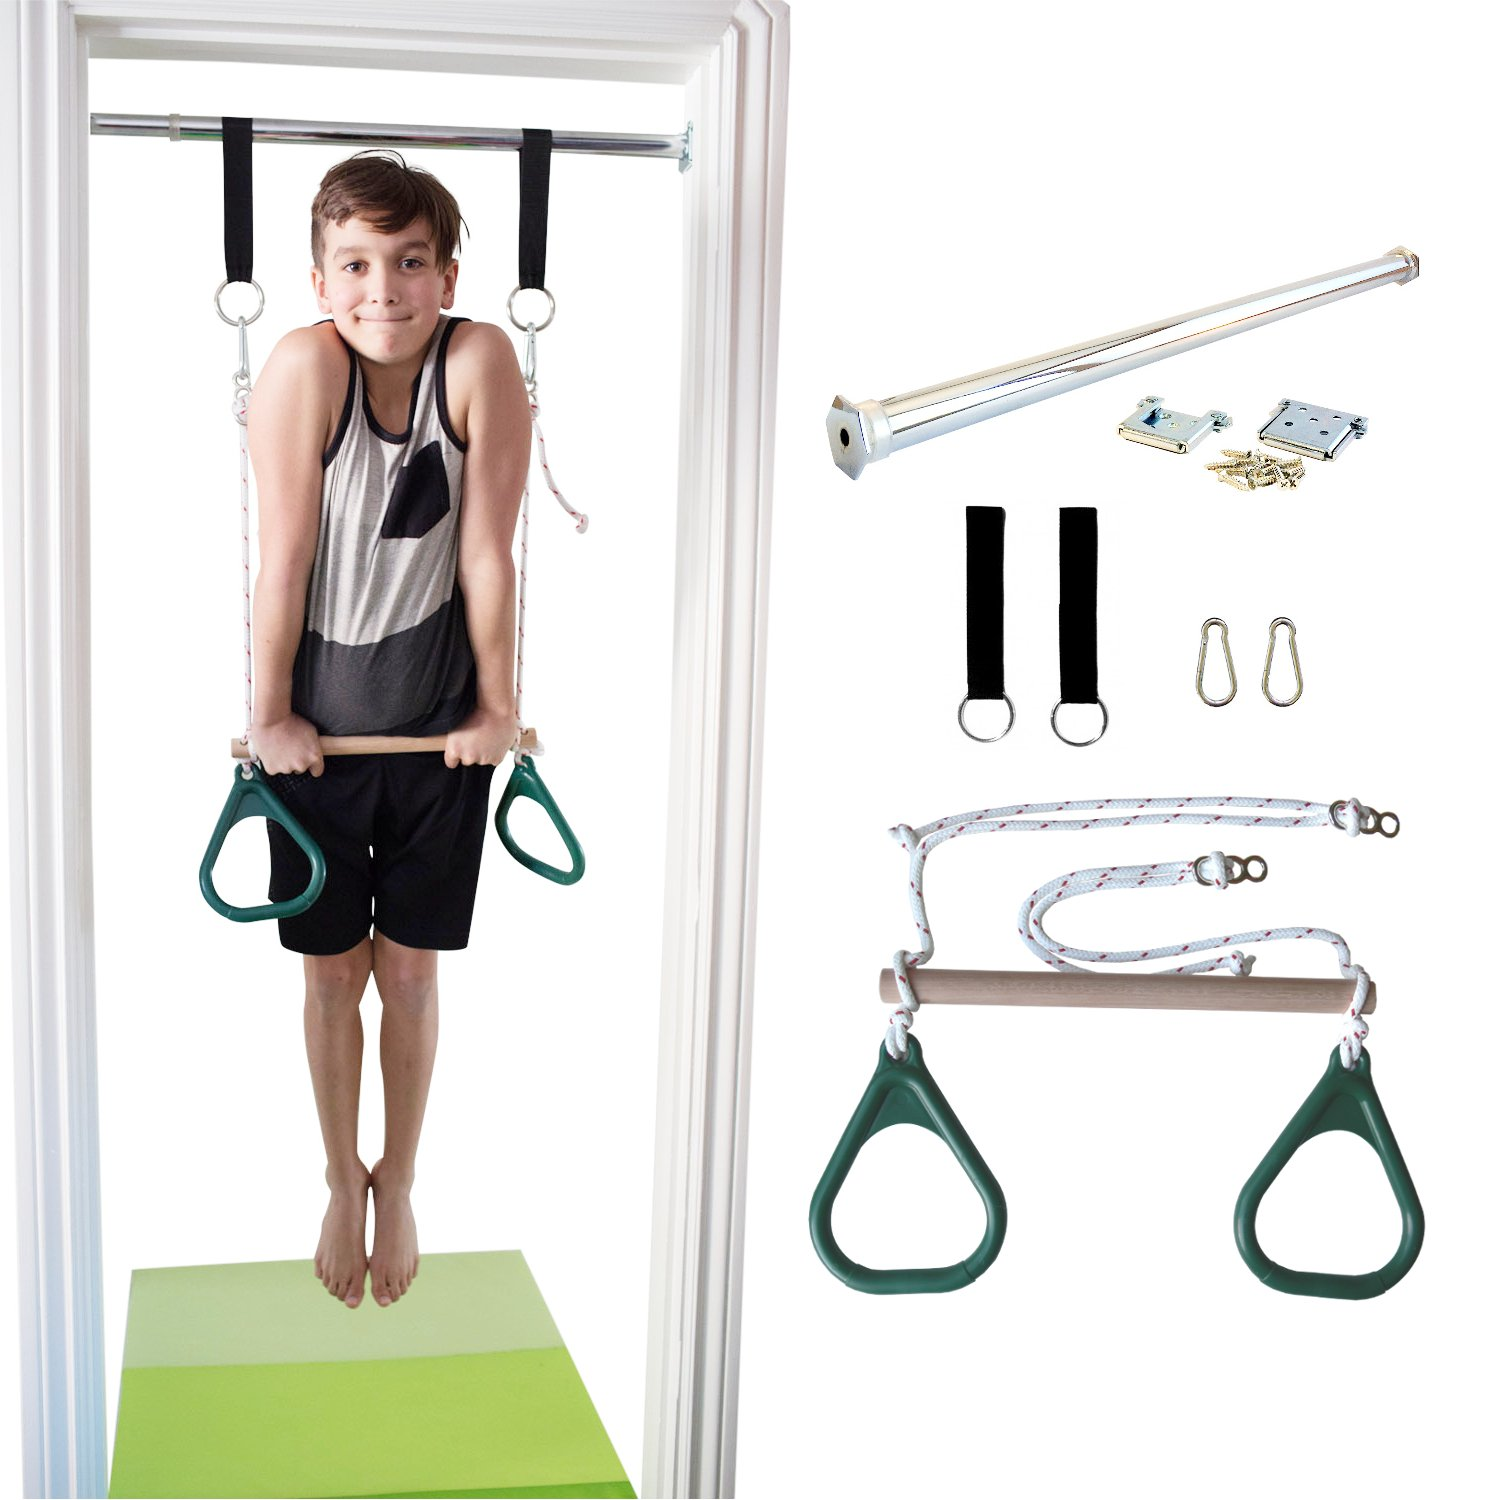 DreamGYM Indoor Swing - Gymnastics Bar and Trapeze Bar and Rings Combo - Green by DreamGYM